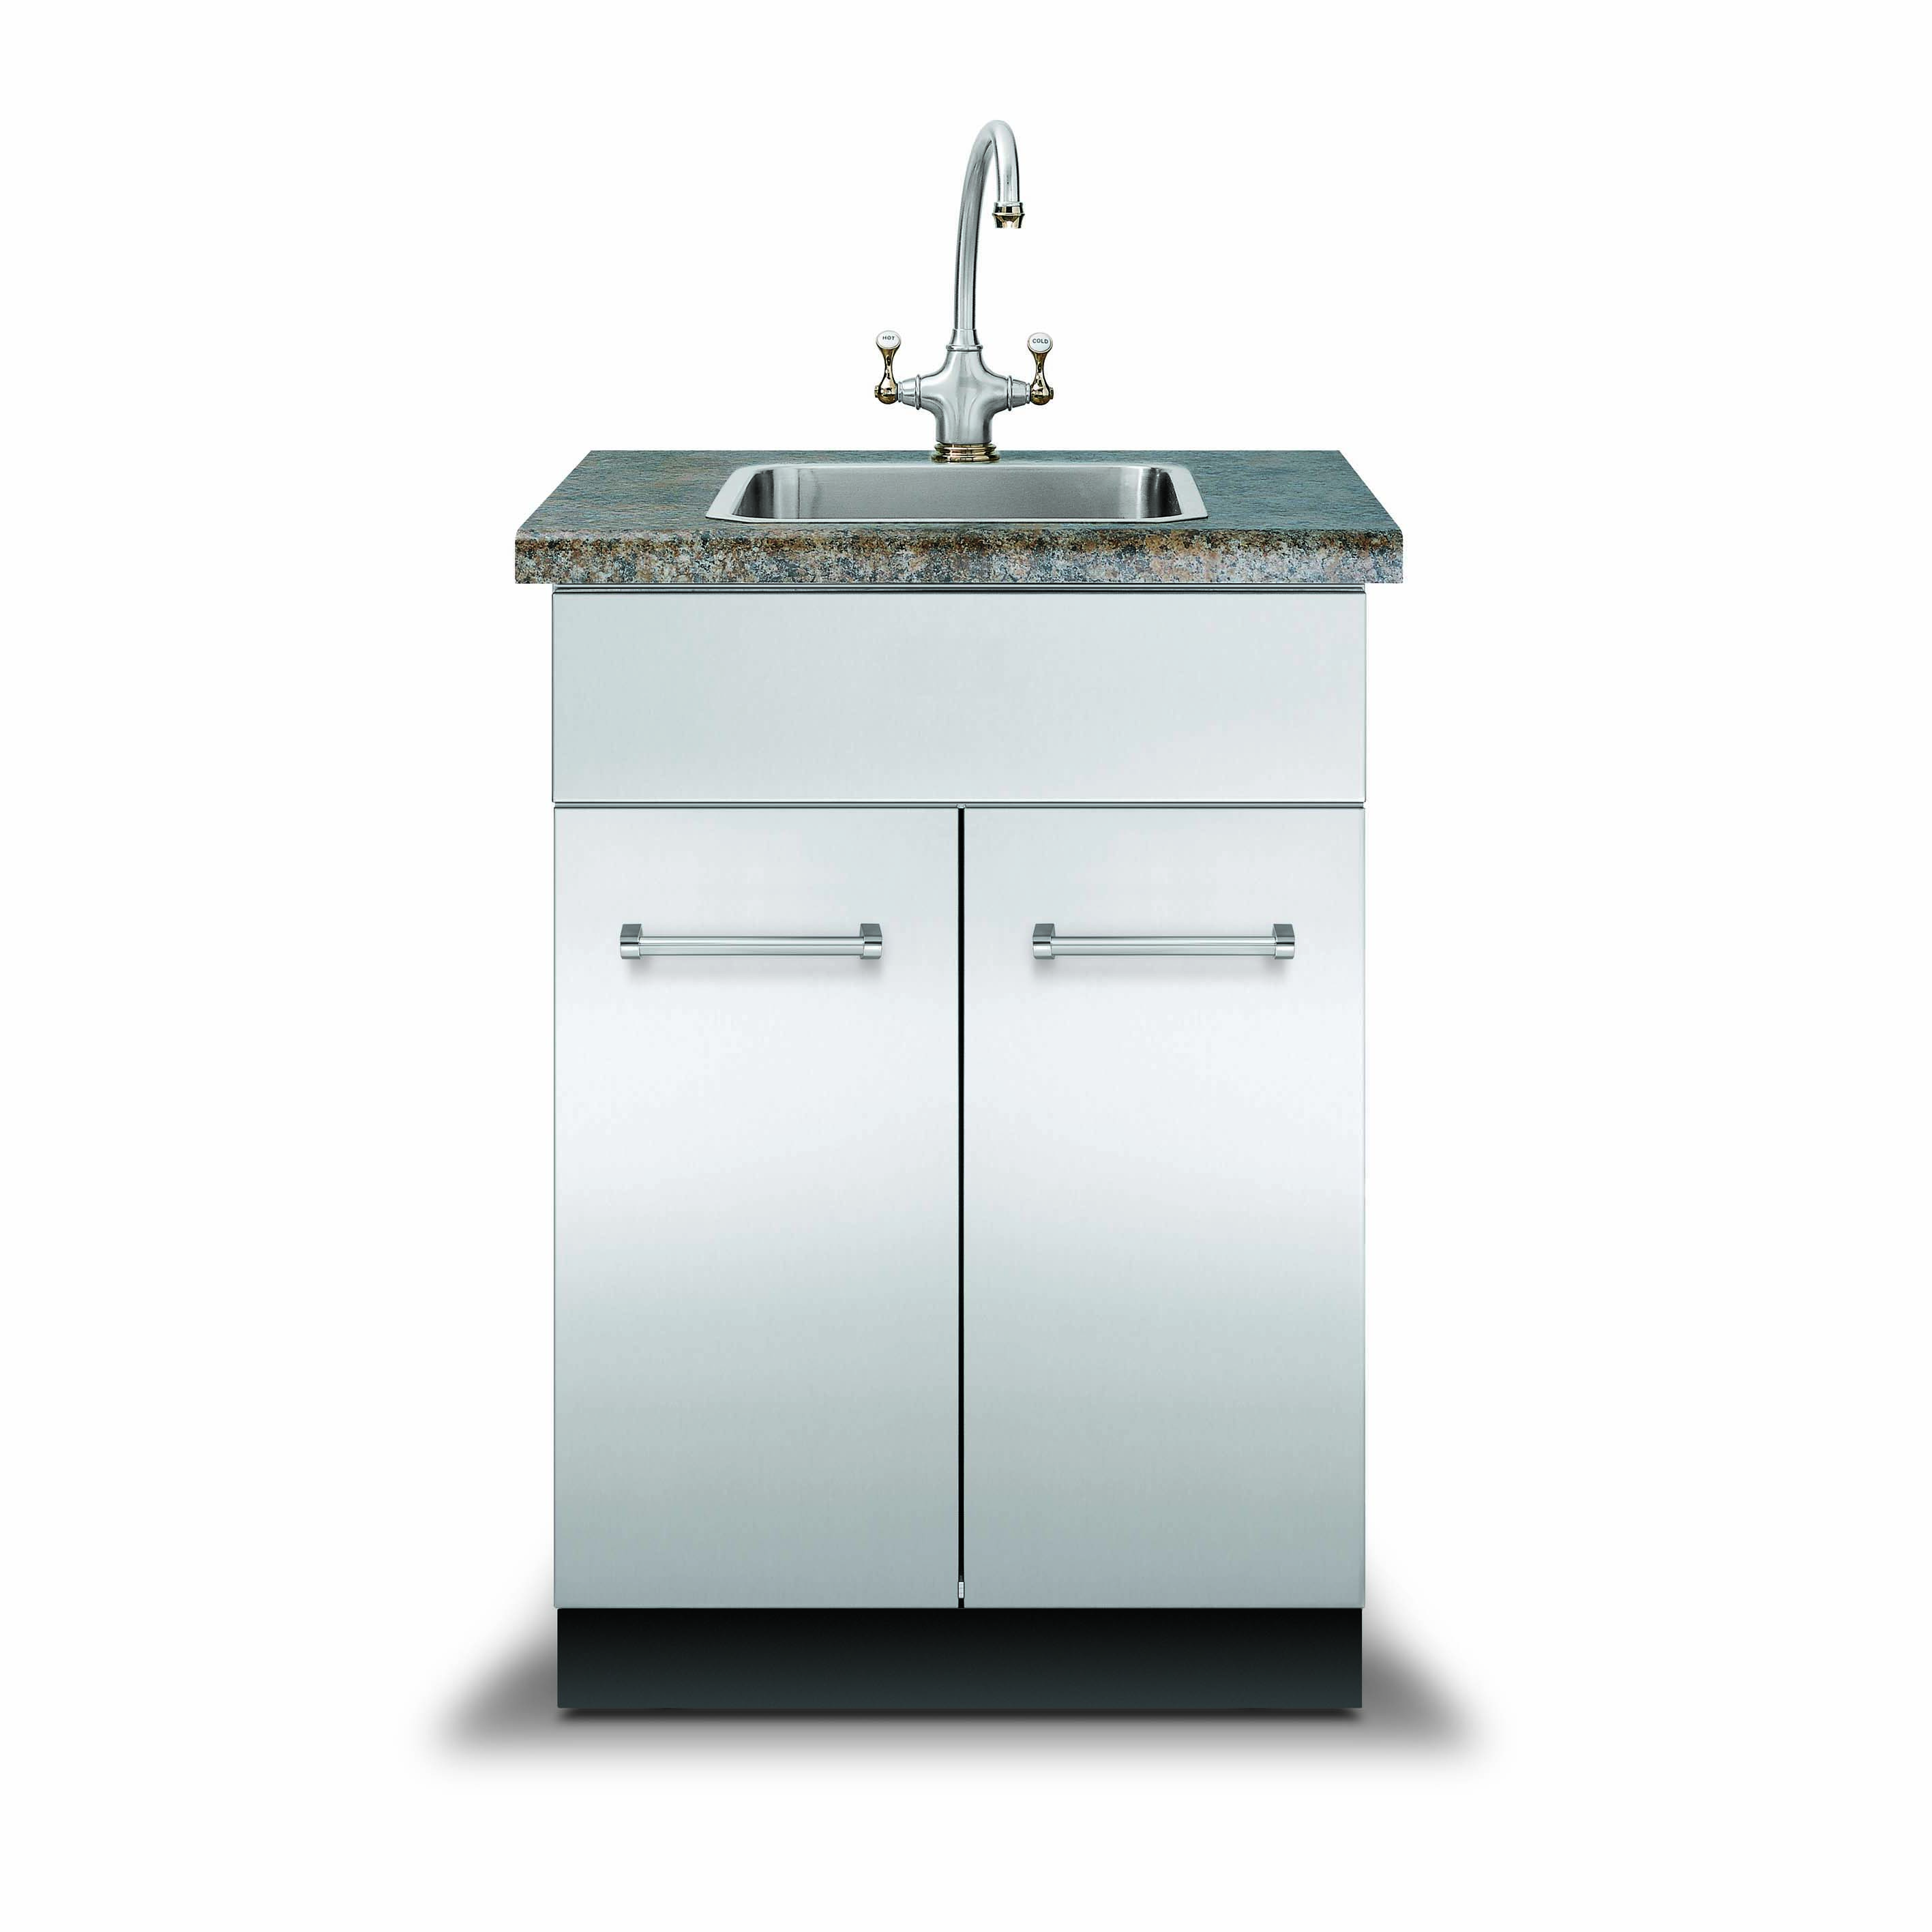 Picture of: Viking 24 X 30 Sink Base Cabinet Vsbo2402 Thegrillfather Com